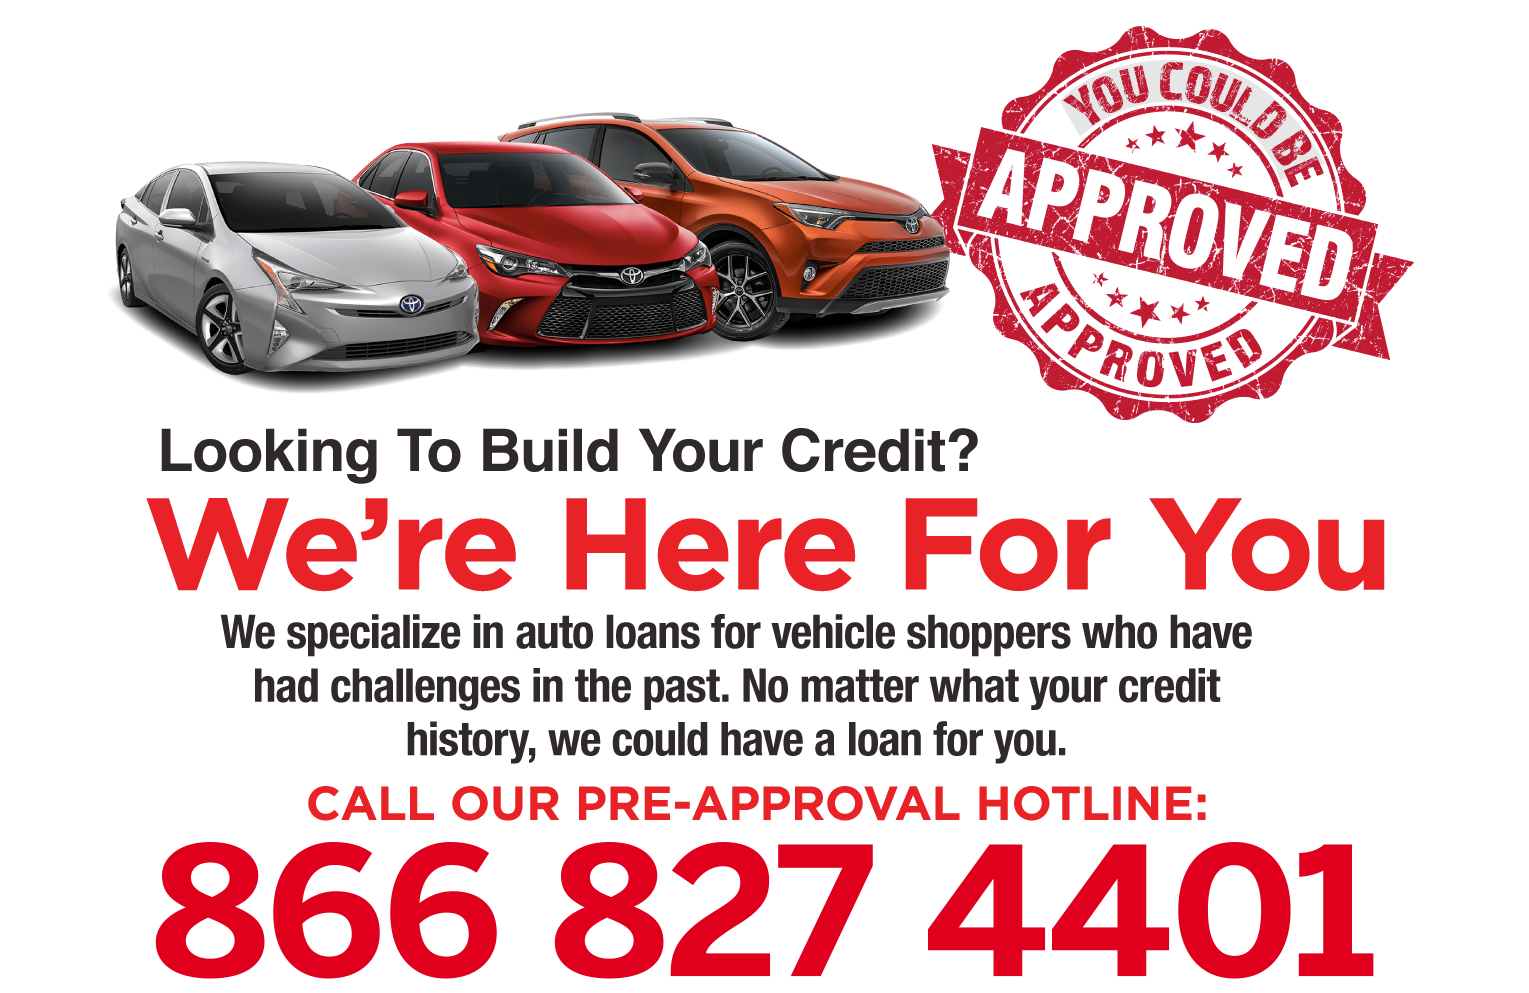 Call our pre-approval hotline 866-827-4401. We are here for you